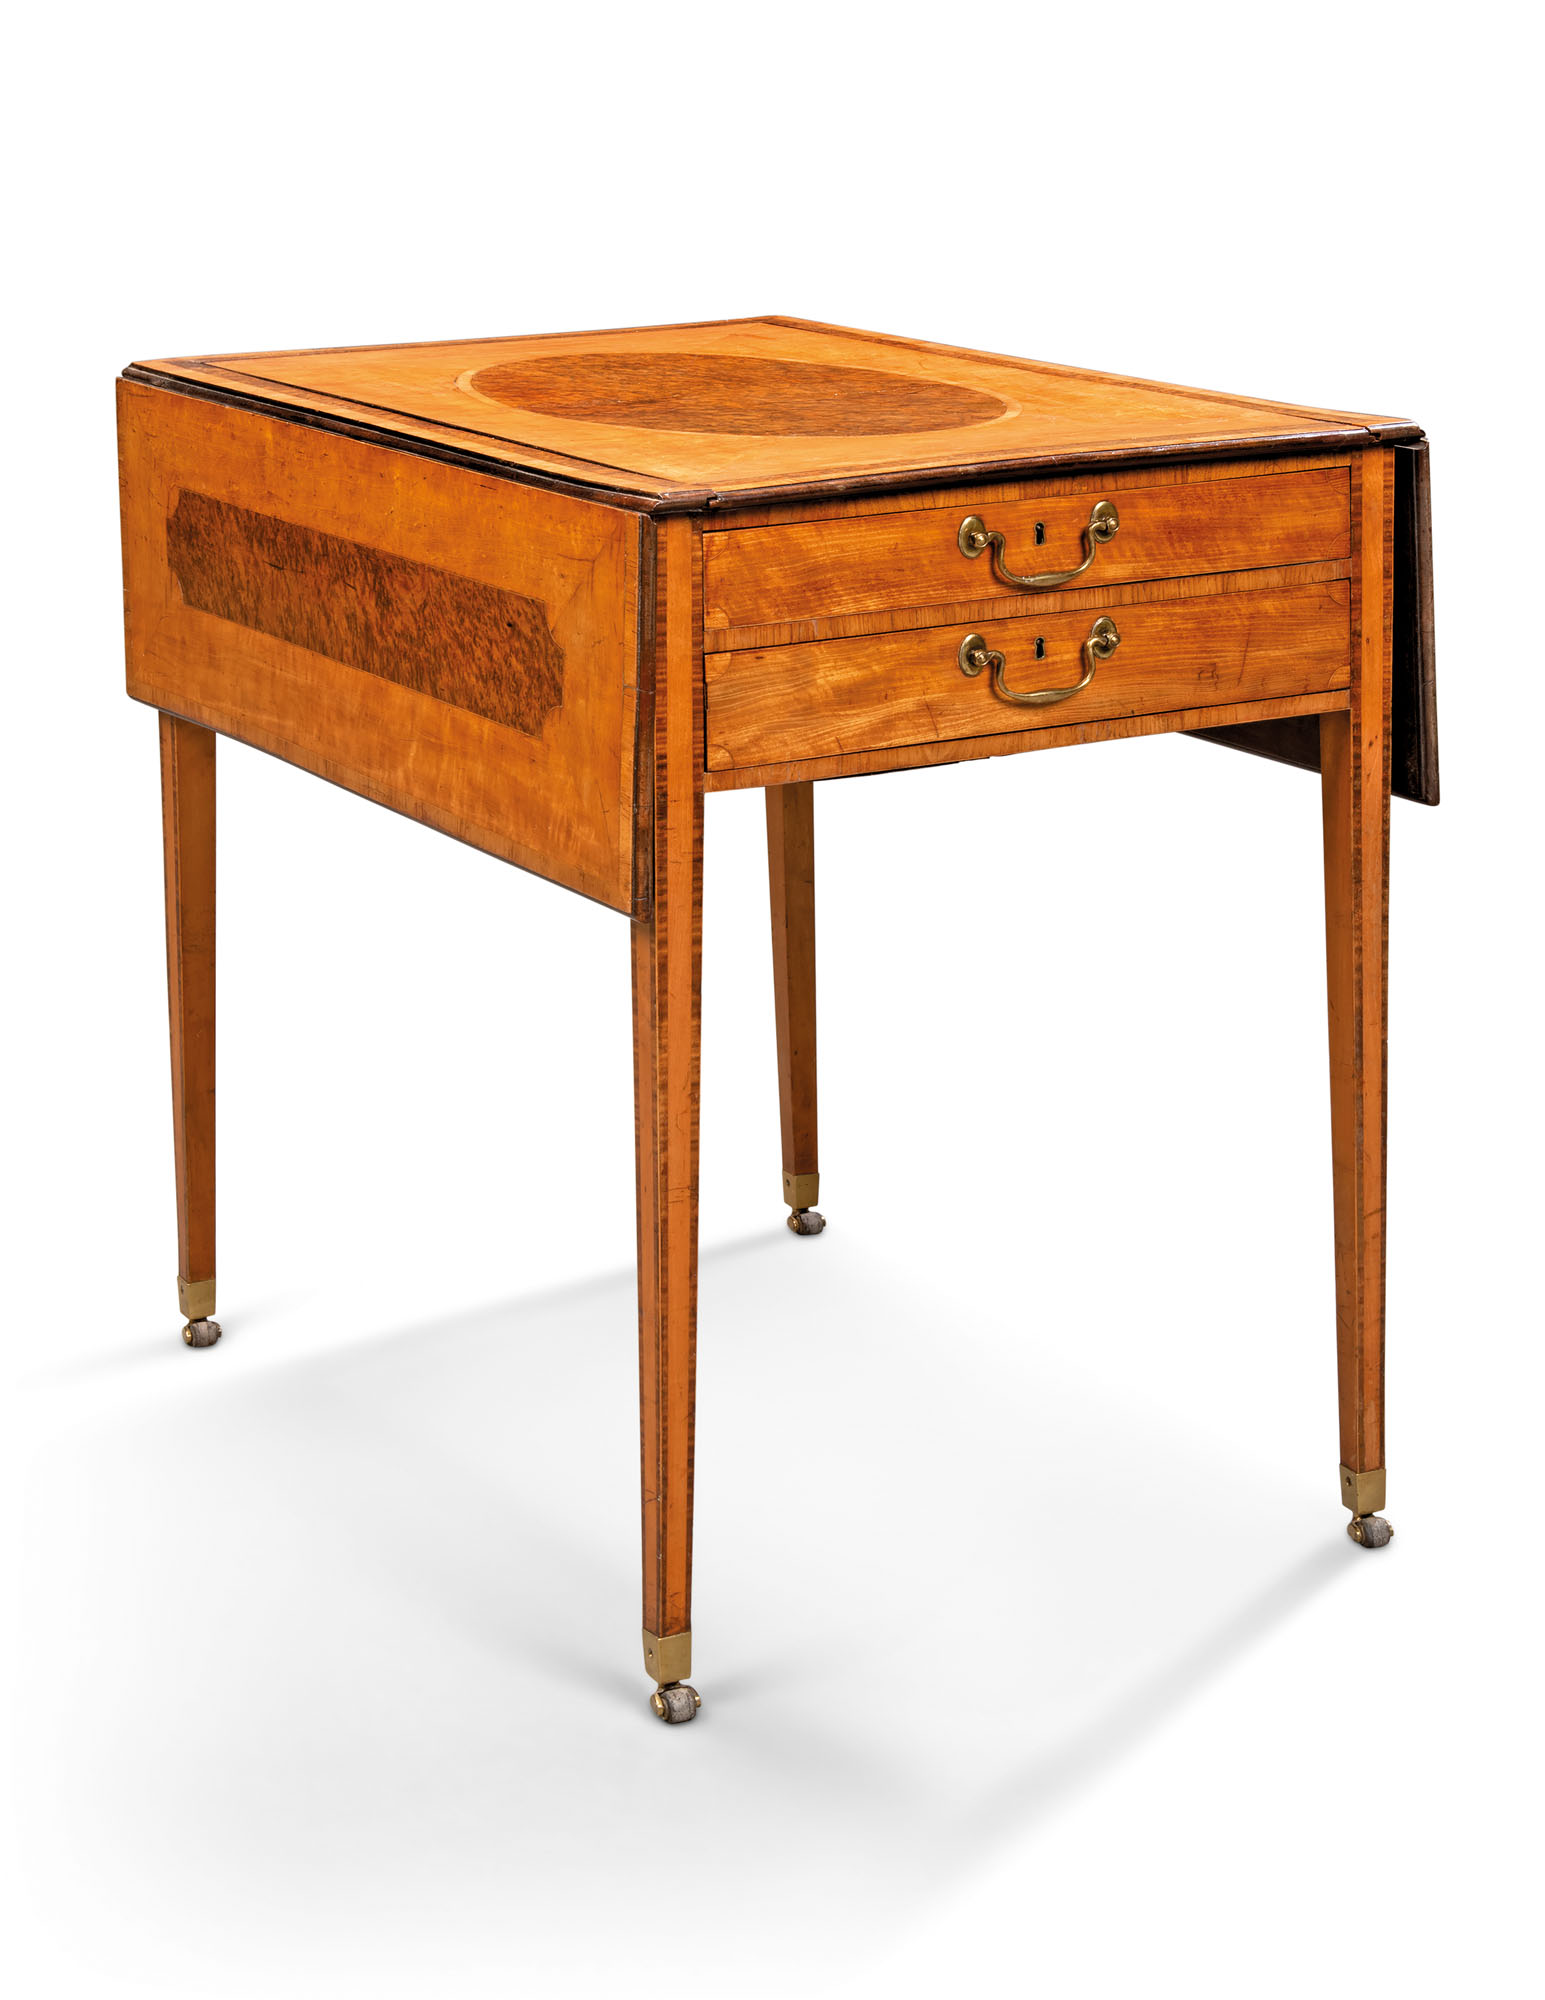 A GEORGE III SATINWOOD AND BURR-YEW HARLEQUIN PEMBROKE TABLE